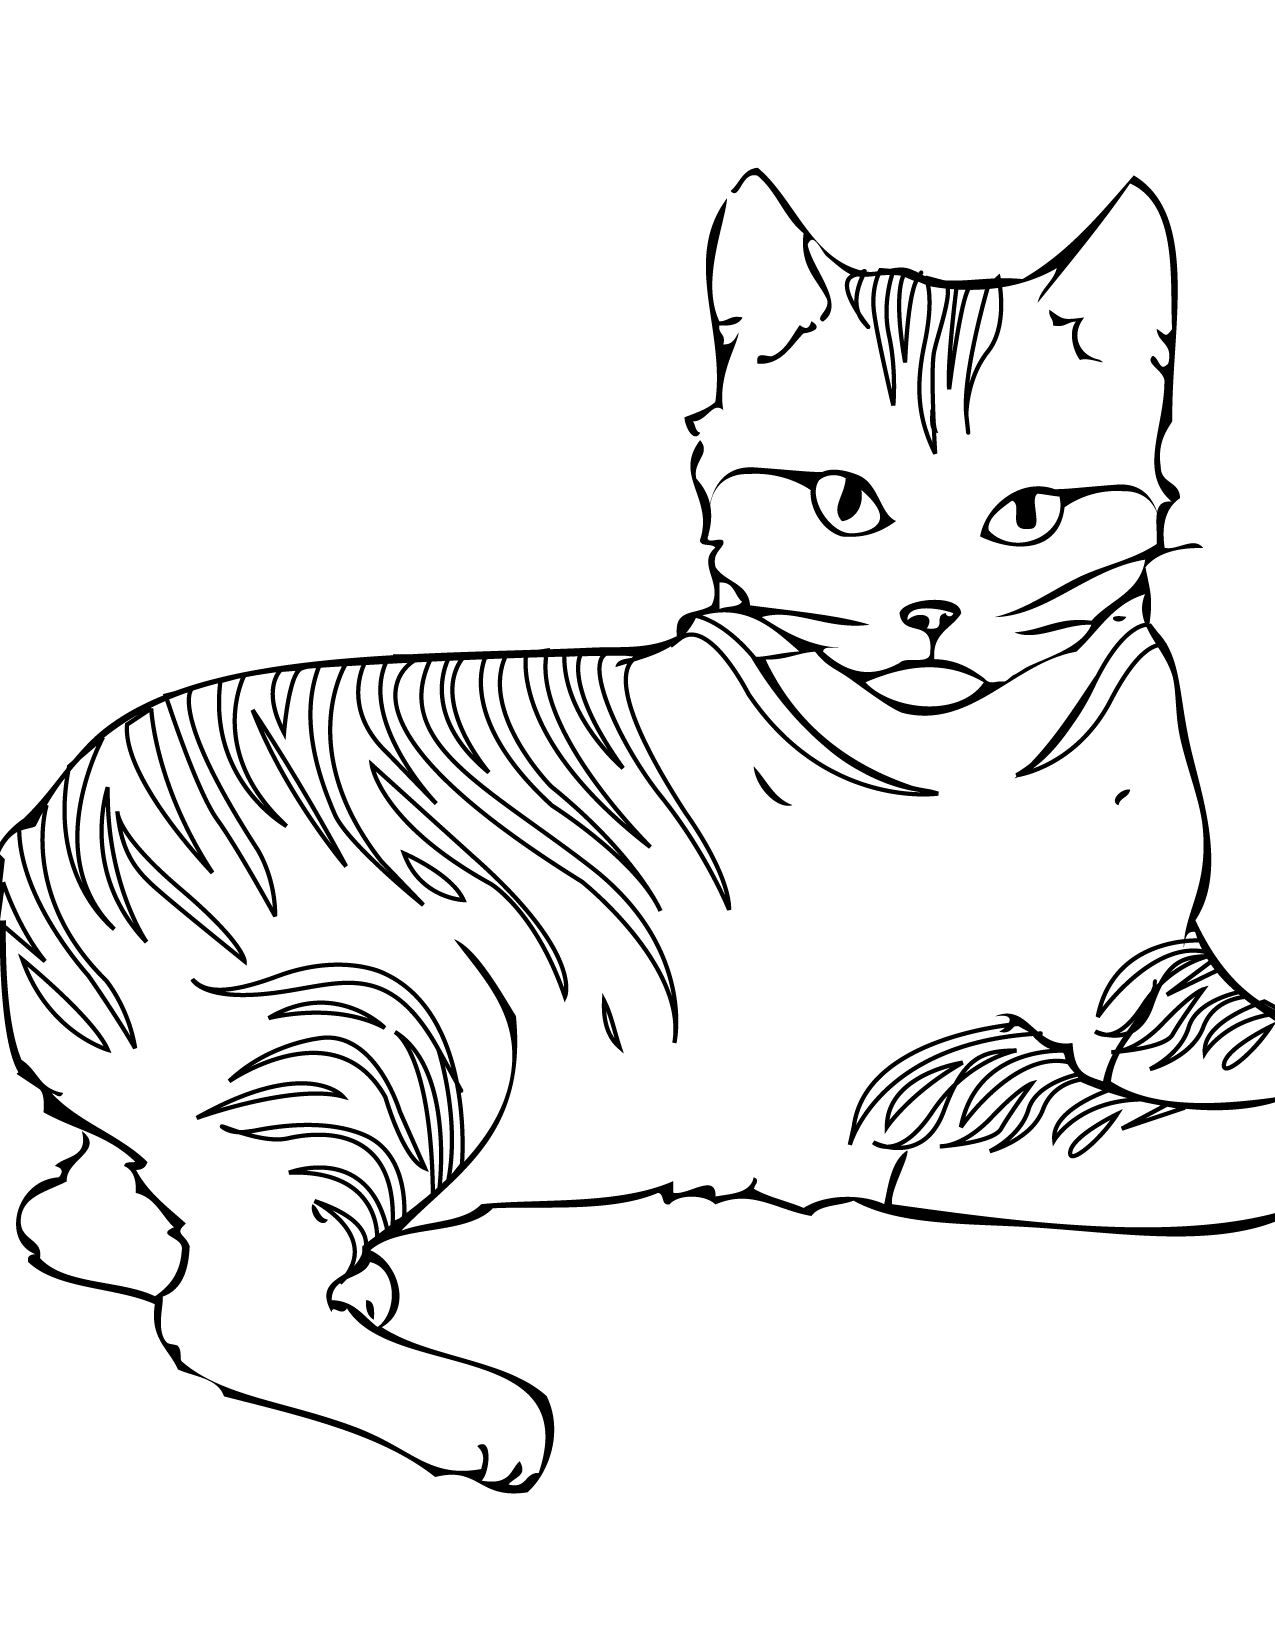 1275x1650 Beautiful Design Coloring Pages Of A Cat Warrior Cat Coloring